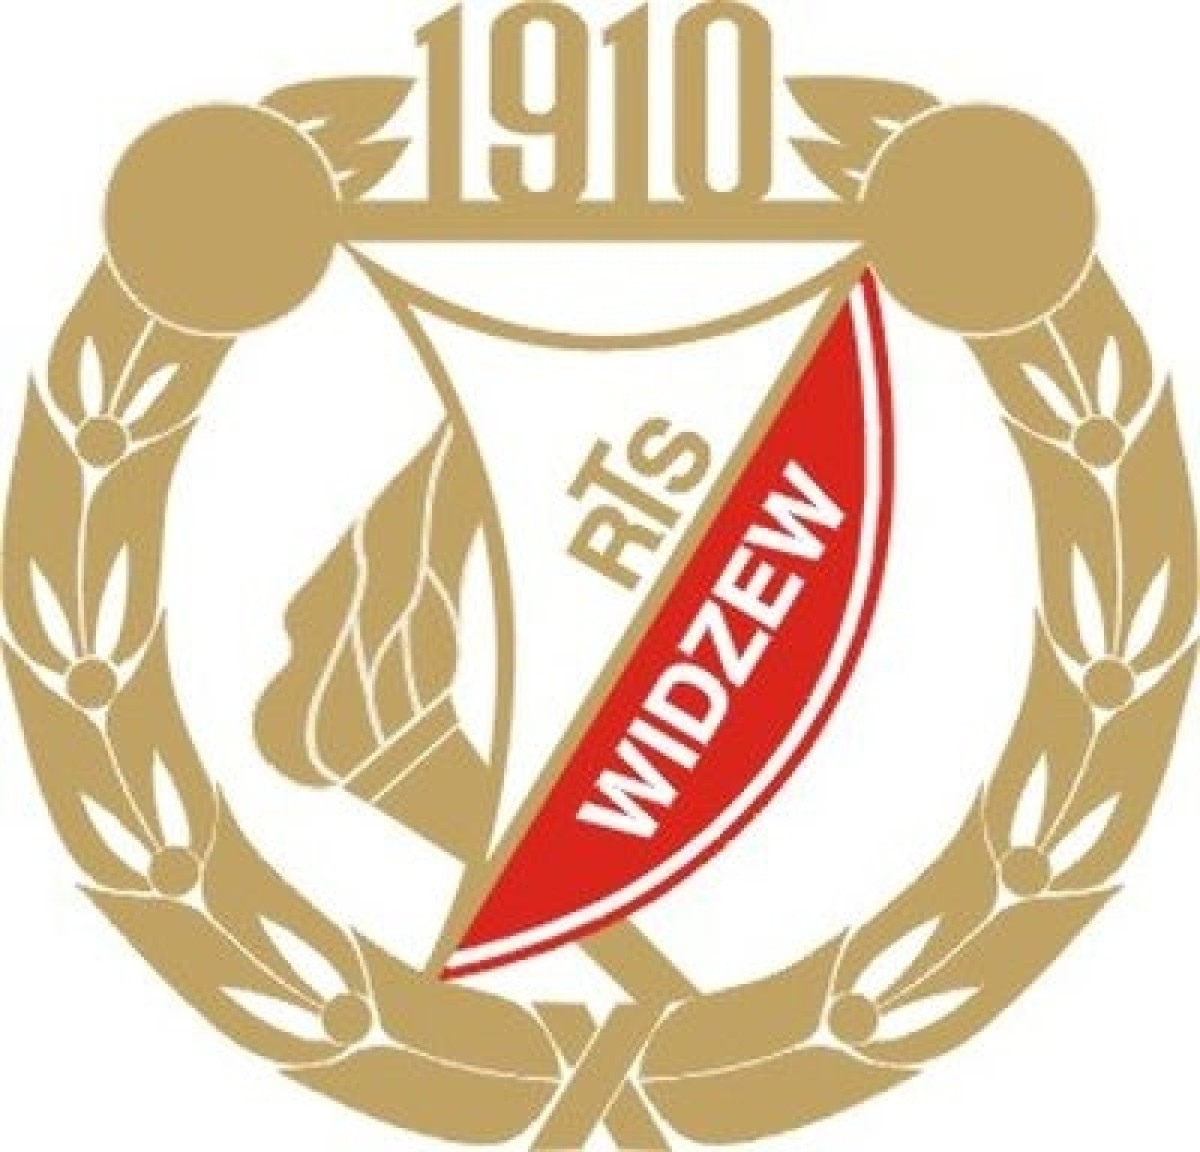 Widzew Lodz: The Story of One of the Best Polish Football Clubs